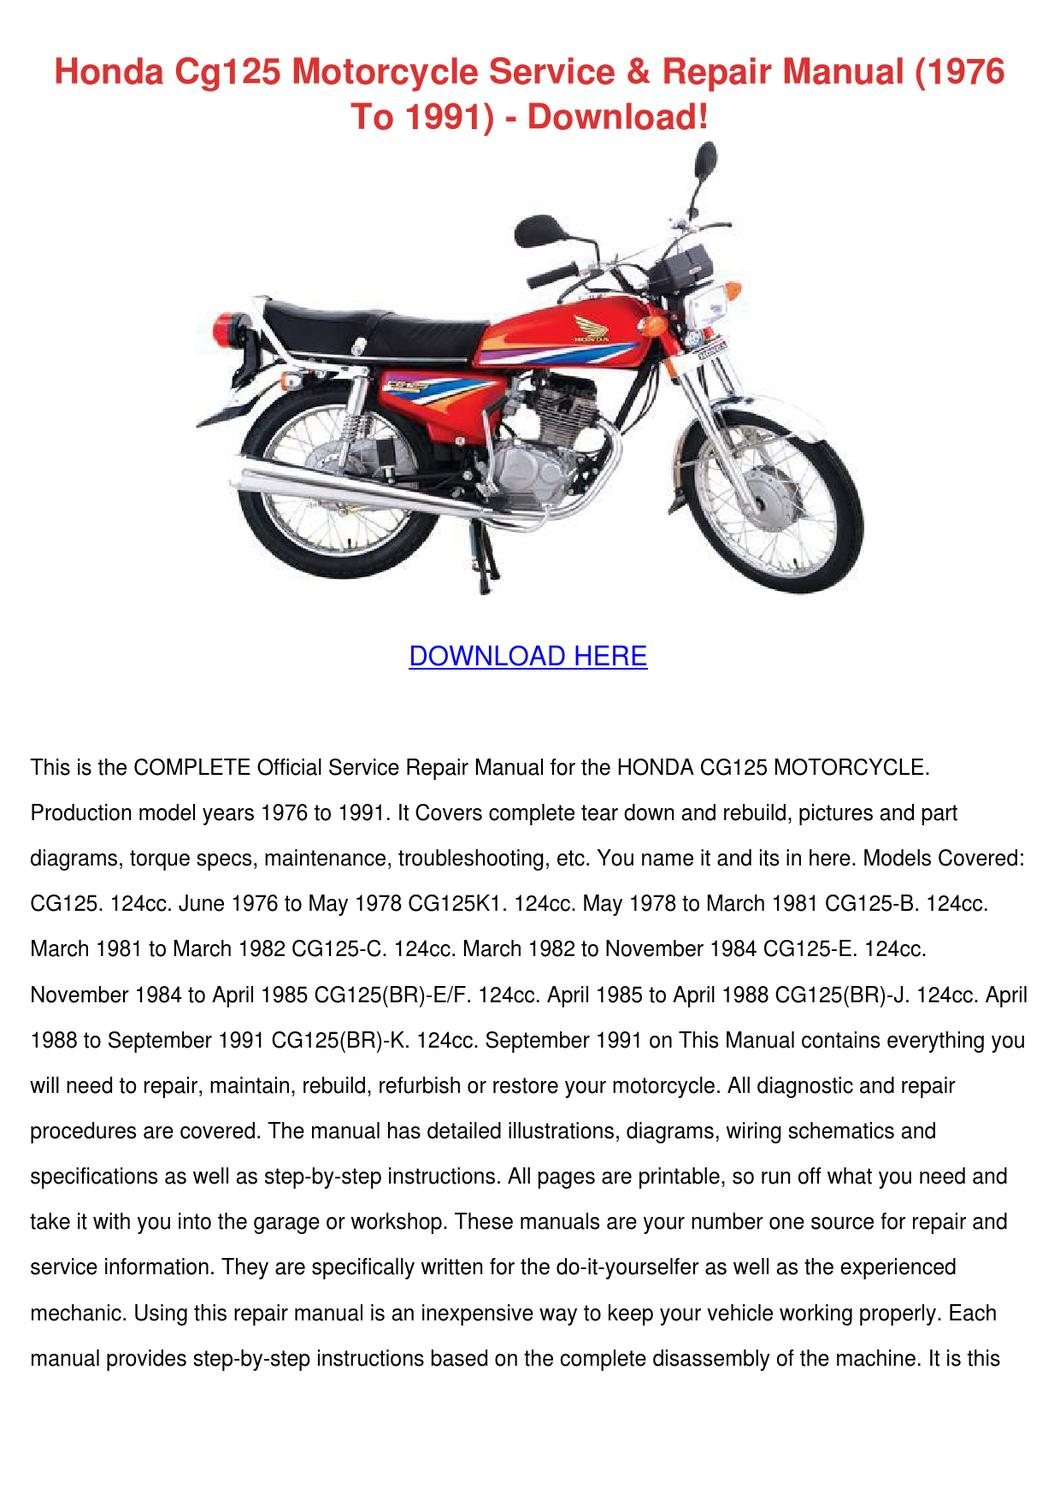 Honda Cg125 Motorcycle Service Repair Manual By